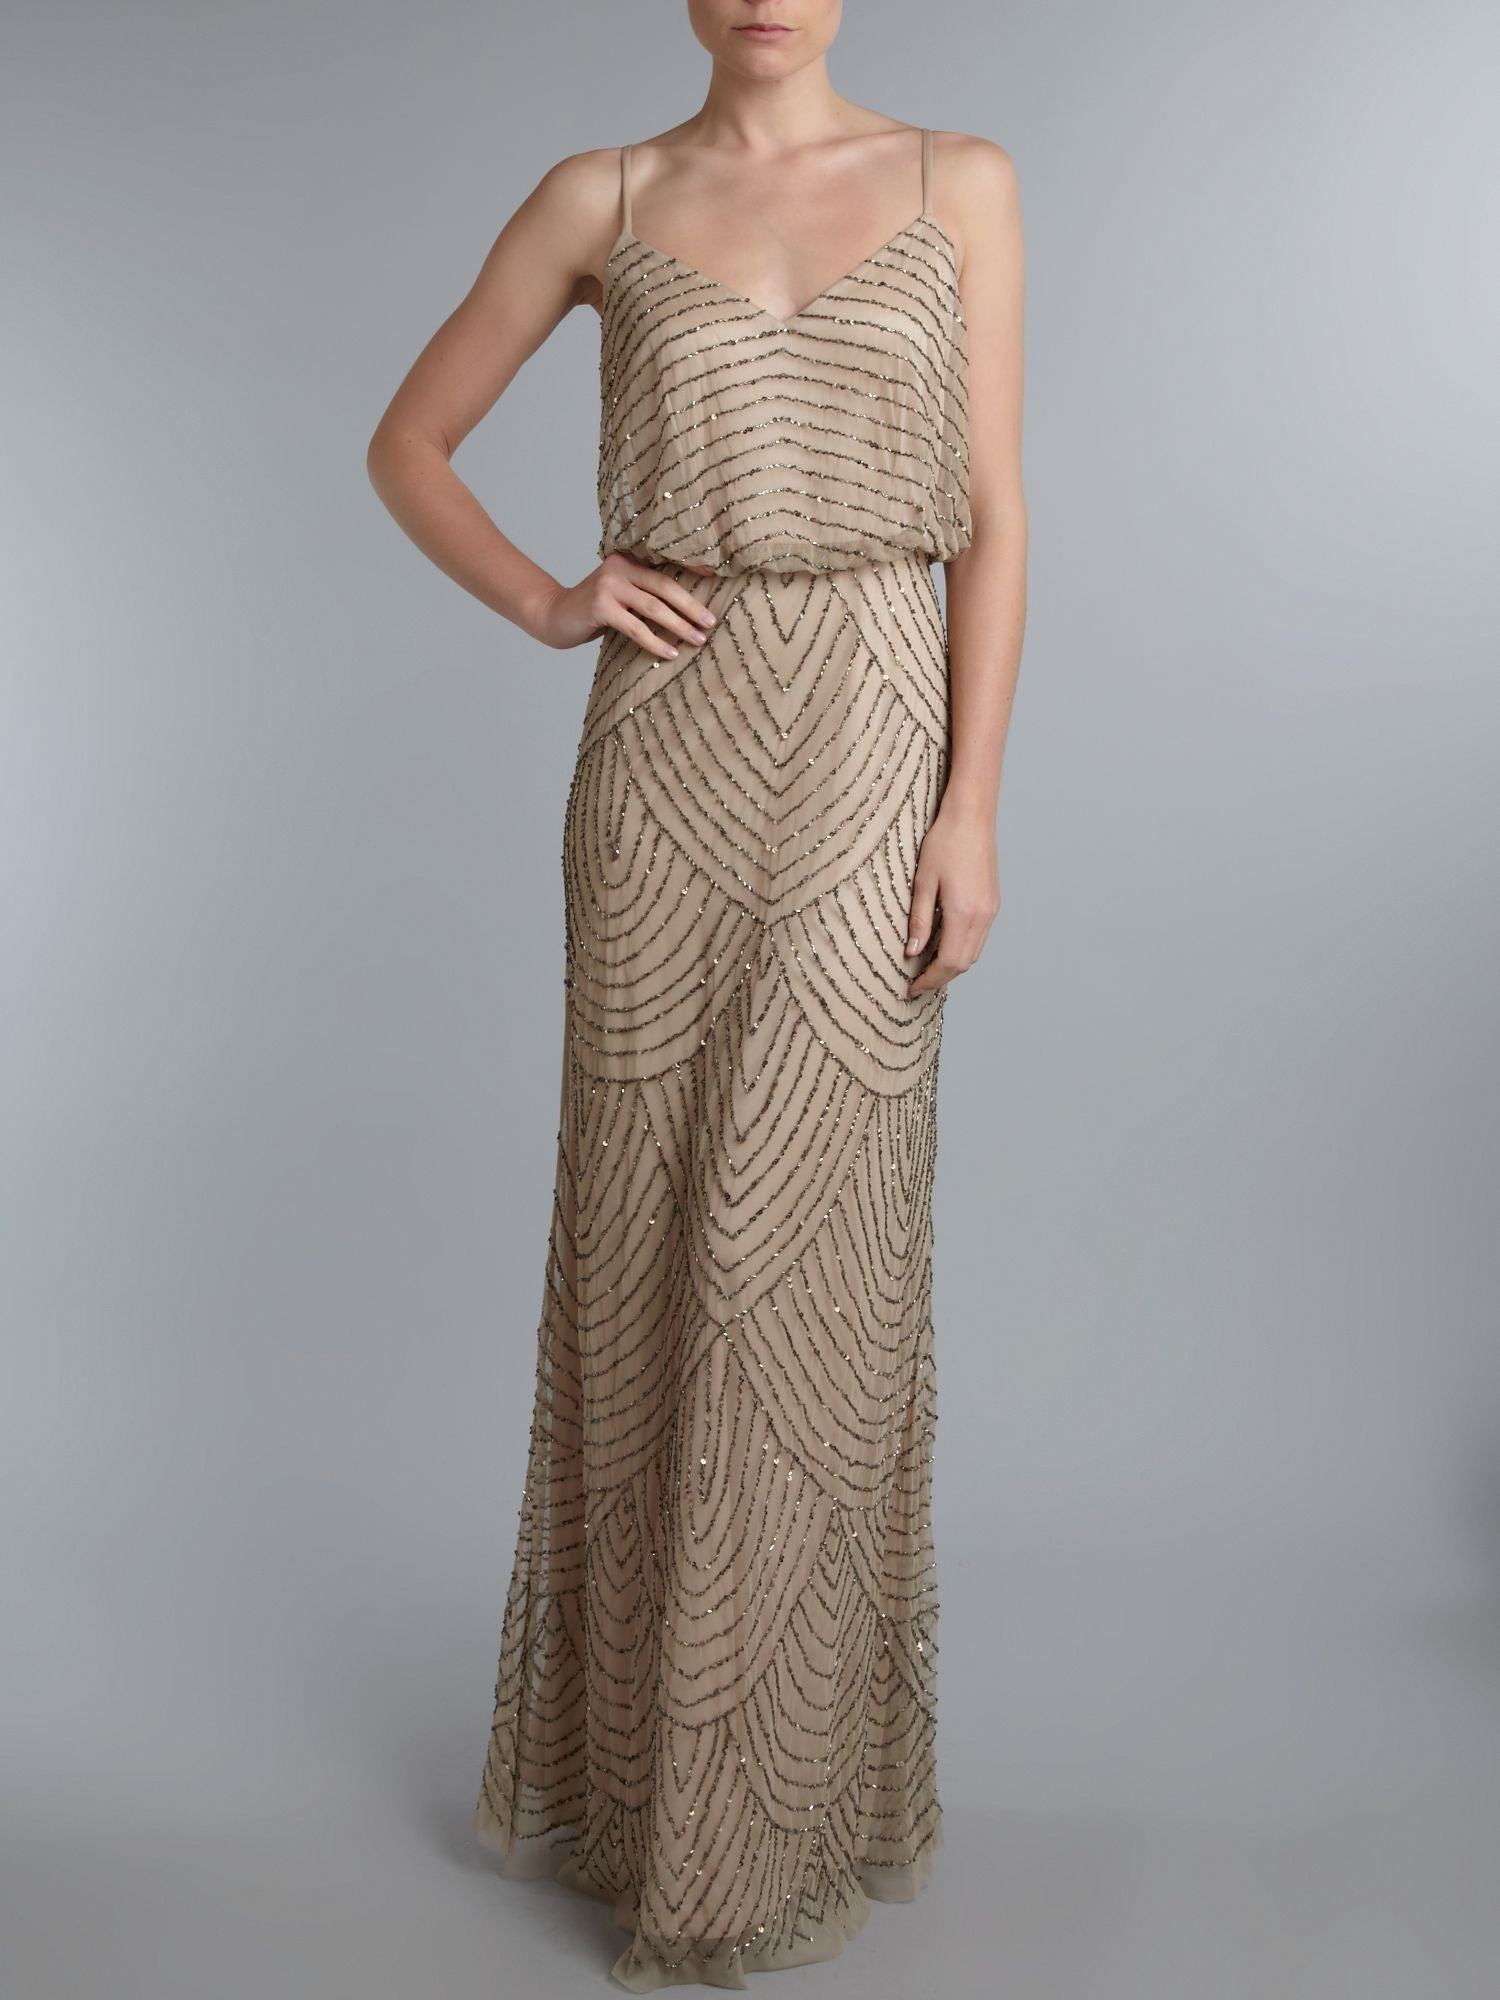 Adrianna Papell Art Deco Beaded Blouson Gown - Taupe/ Pink - Adinas ...